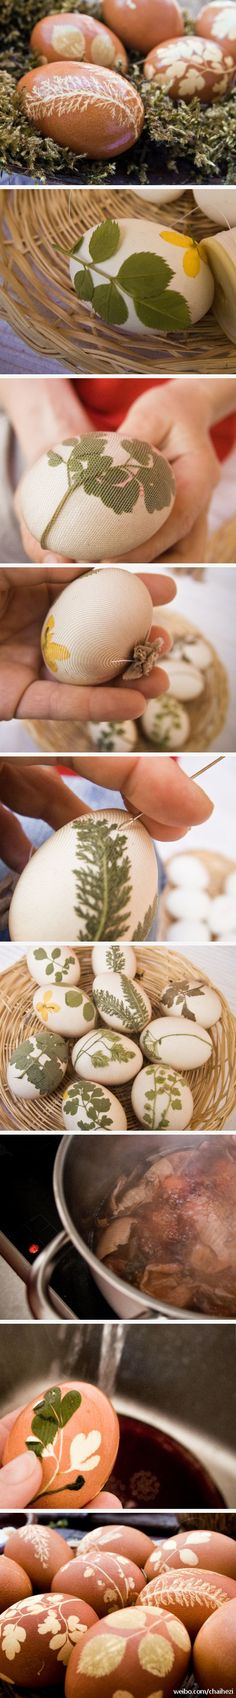 Nature eggs - use old stockings.  Double-dye them for more color.